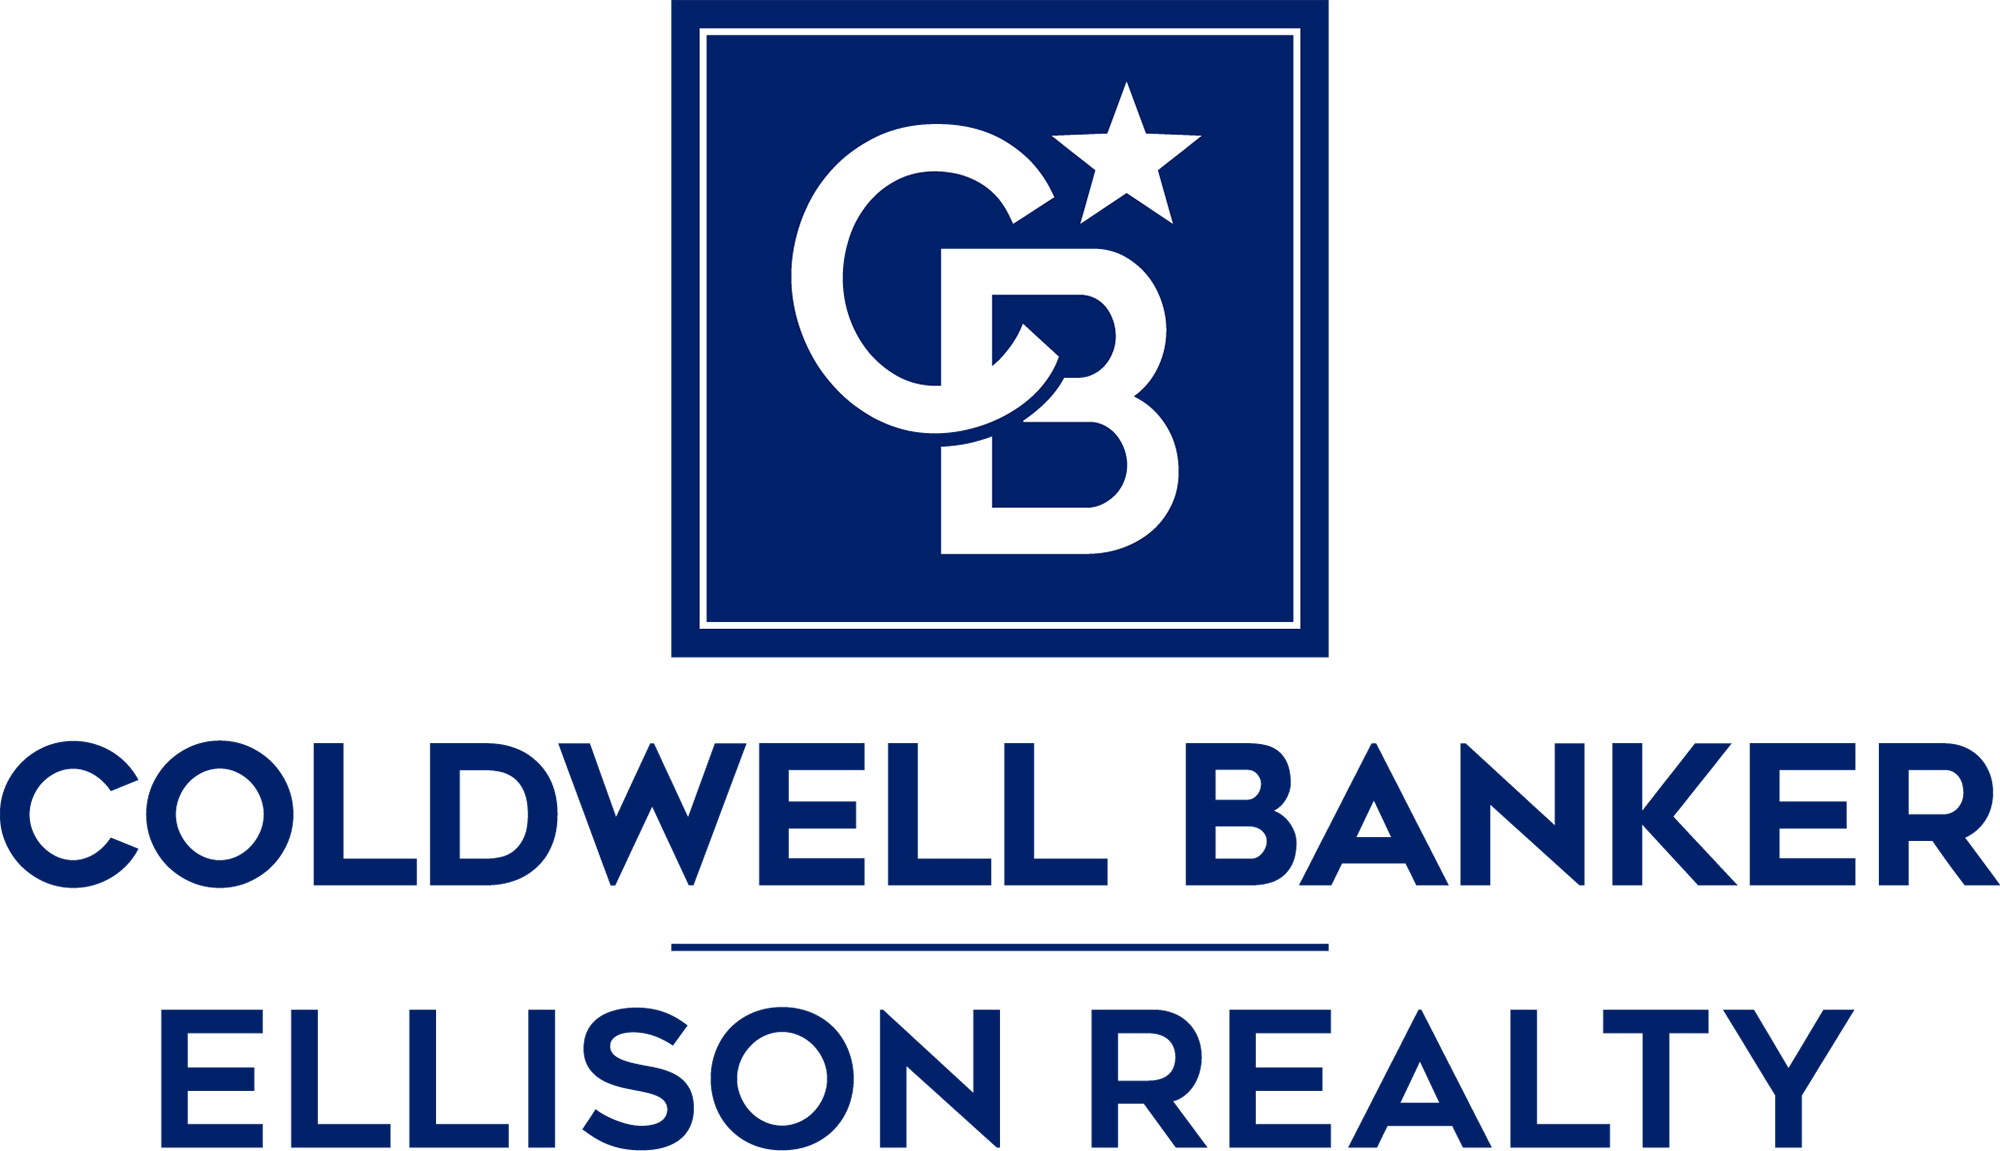 Kathryn Johnson - Coldwell Banker Ellison Realty Logo